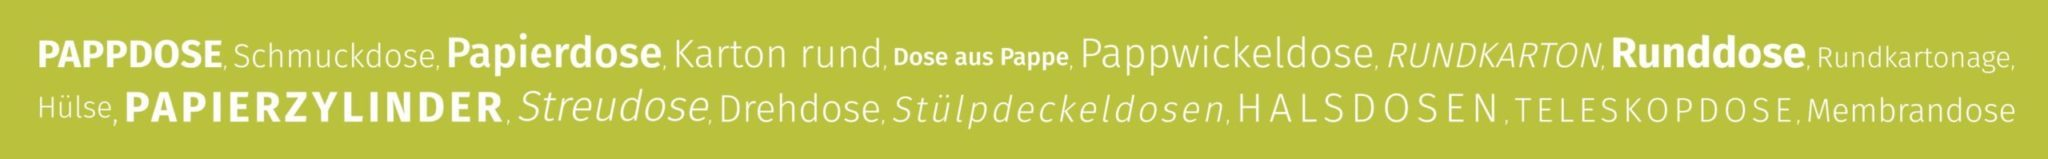 betubed, Pappdose, Synonyme für Pappdose